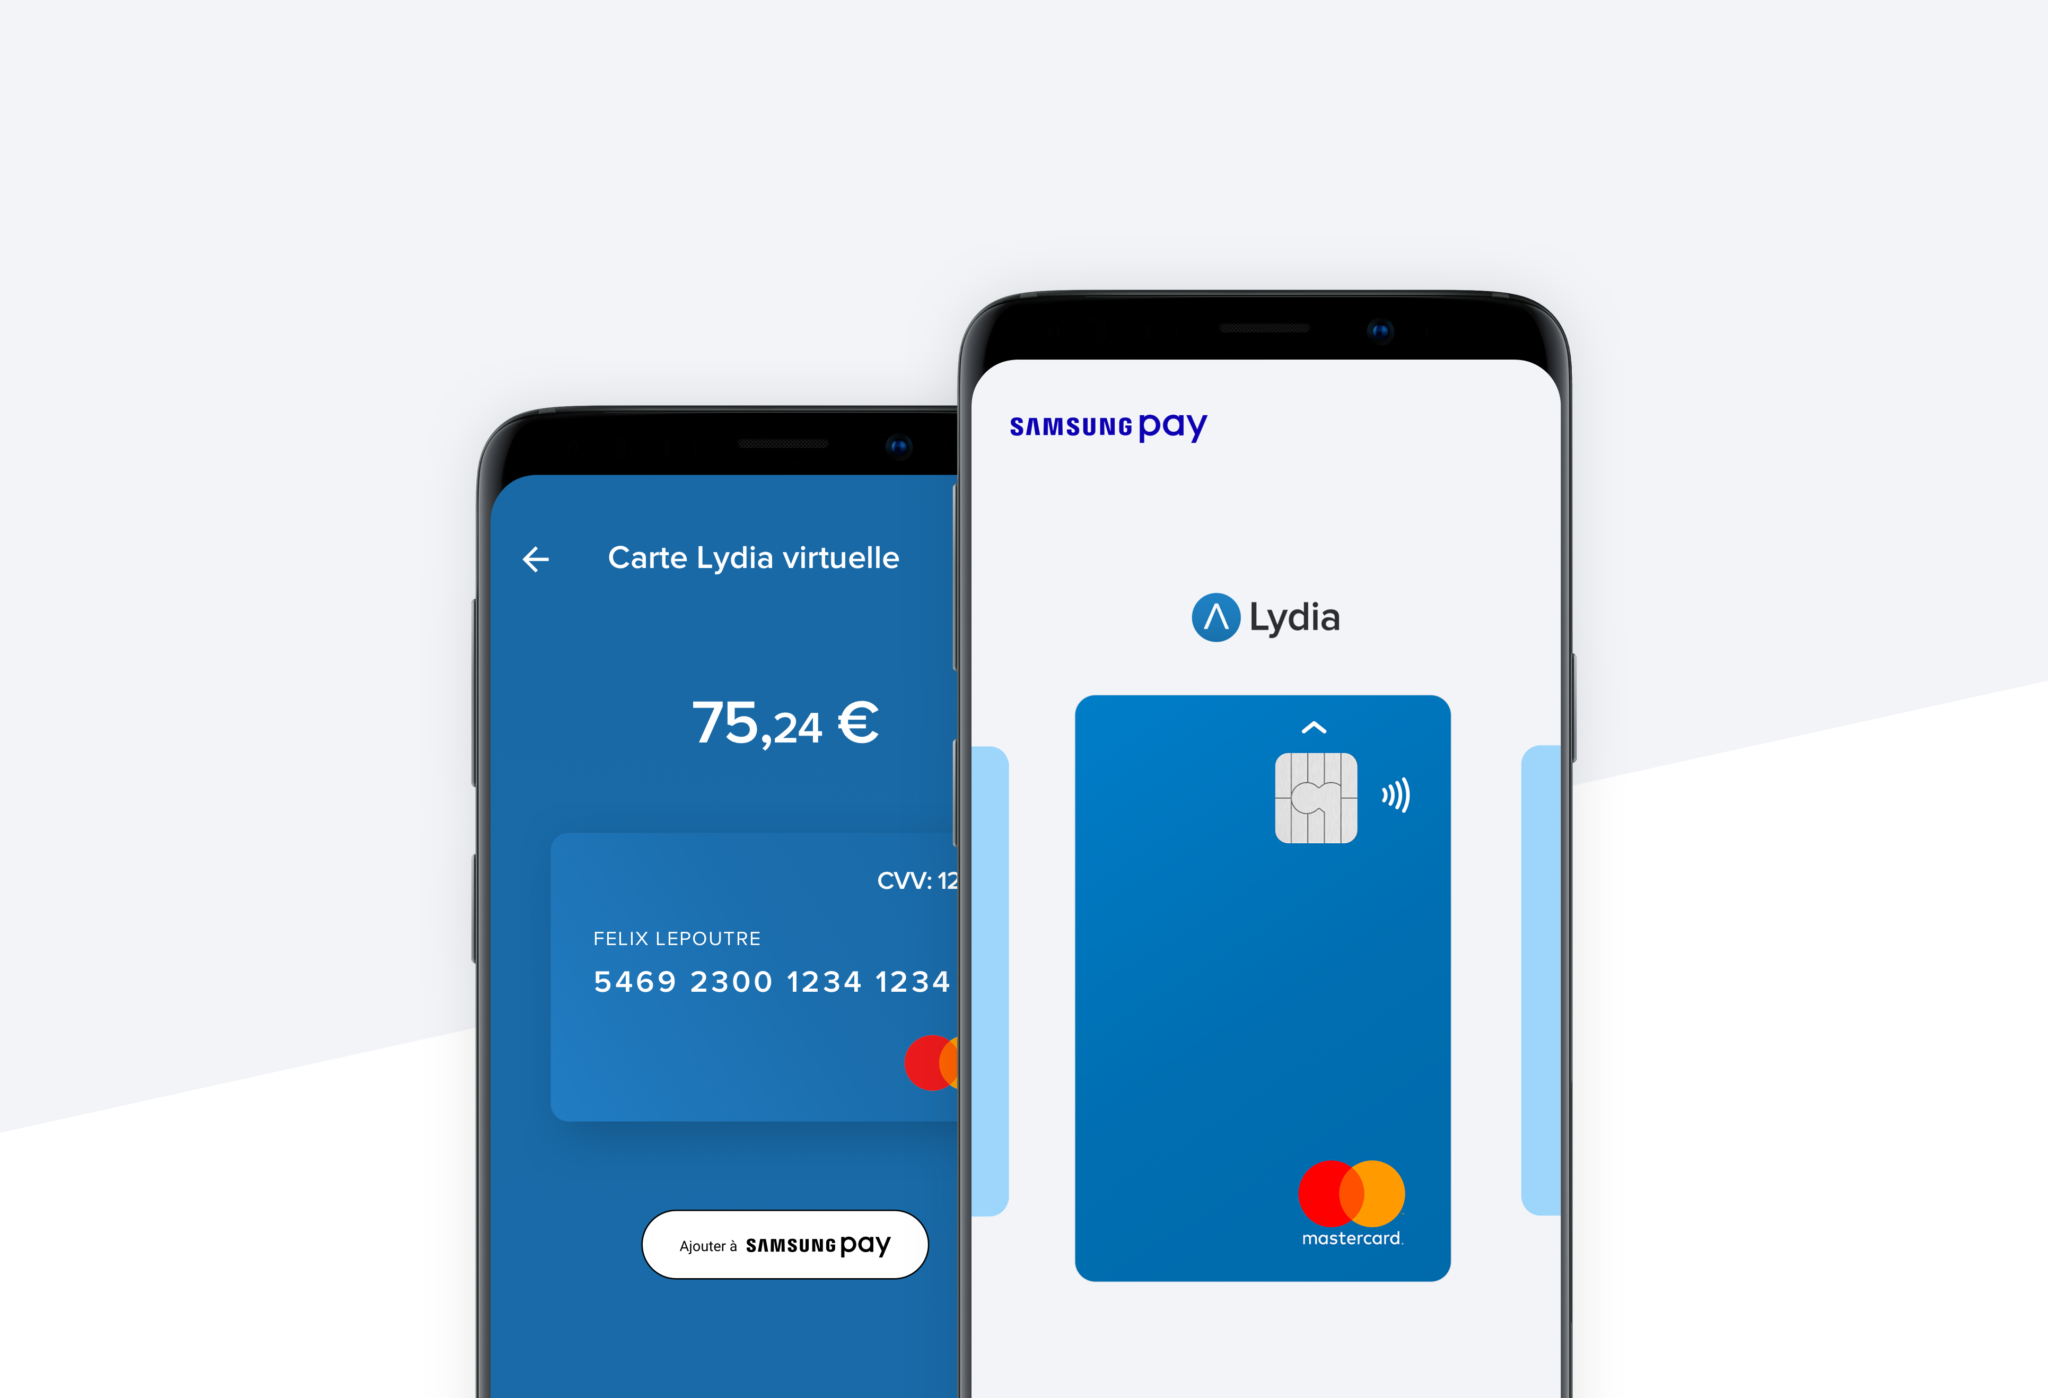 Samsung Pay Lydia paiement mobile